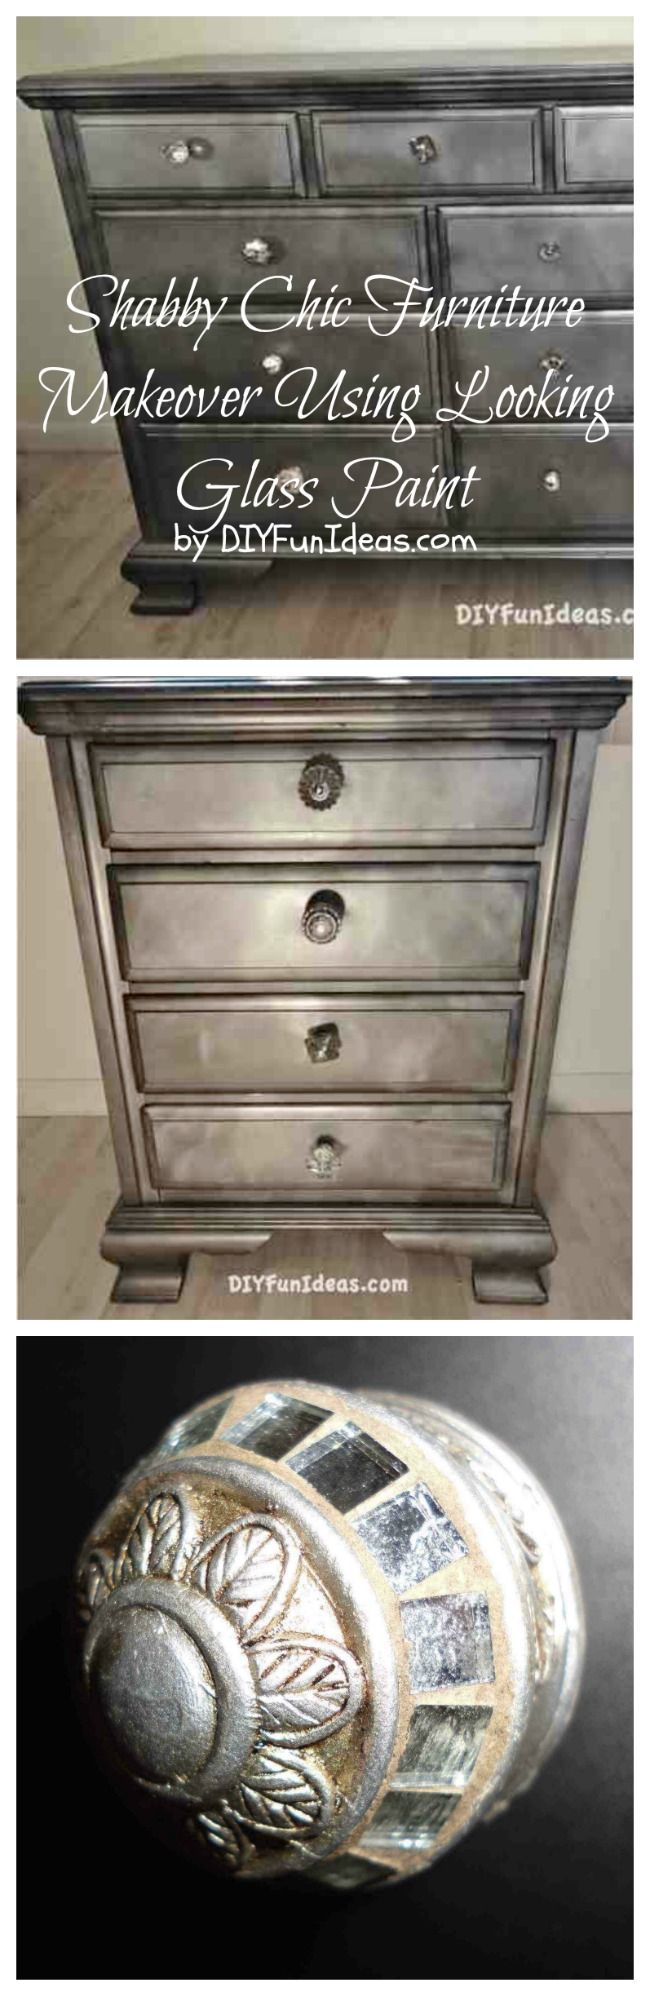 274 Best Images About Diy Repair Restore Redo Furniture On Pinterest Woods Furniture And